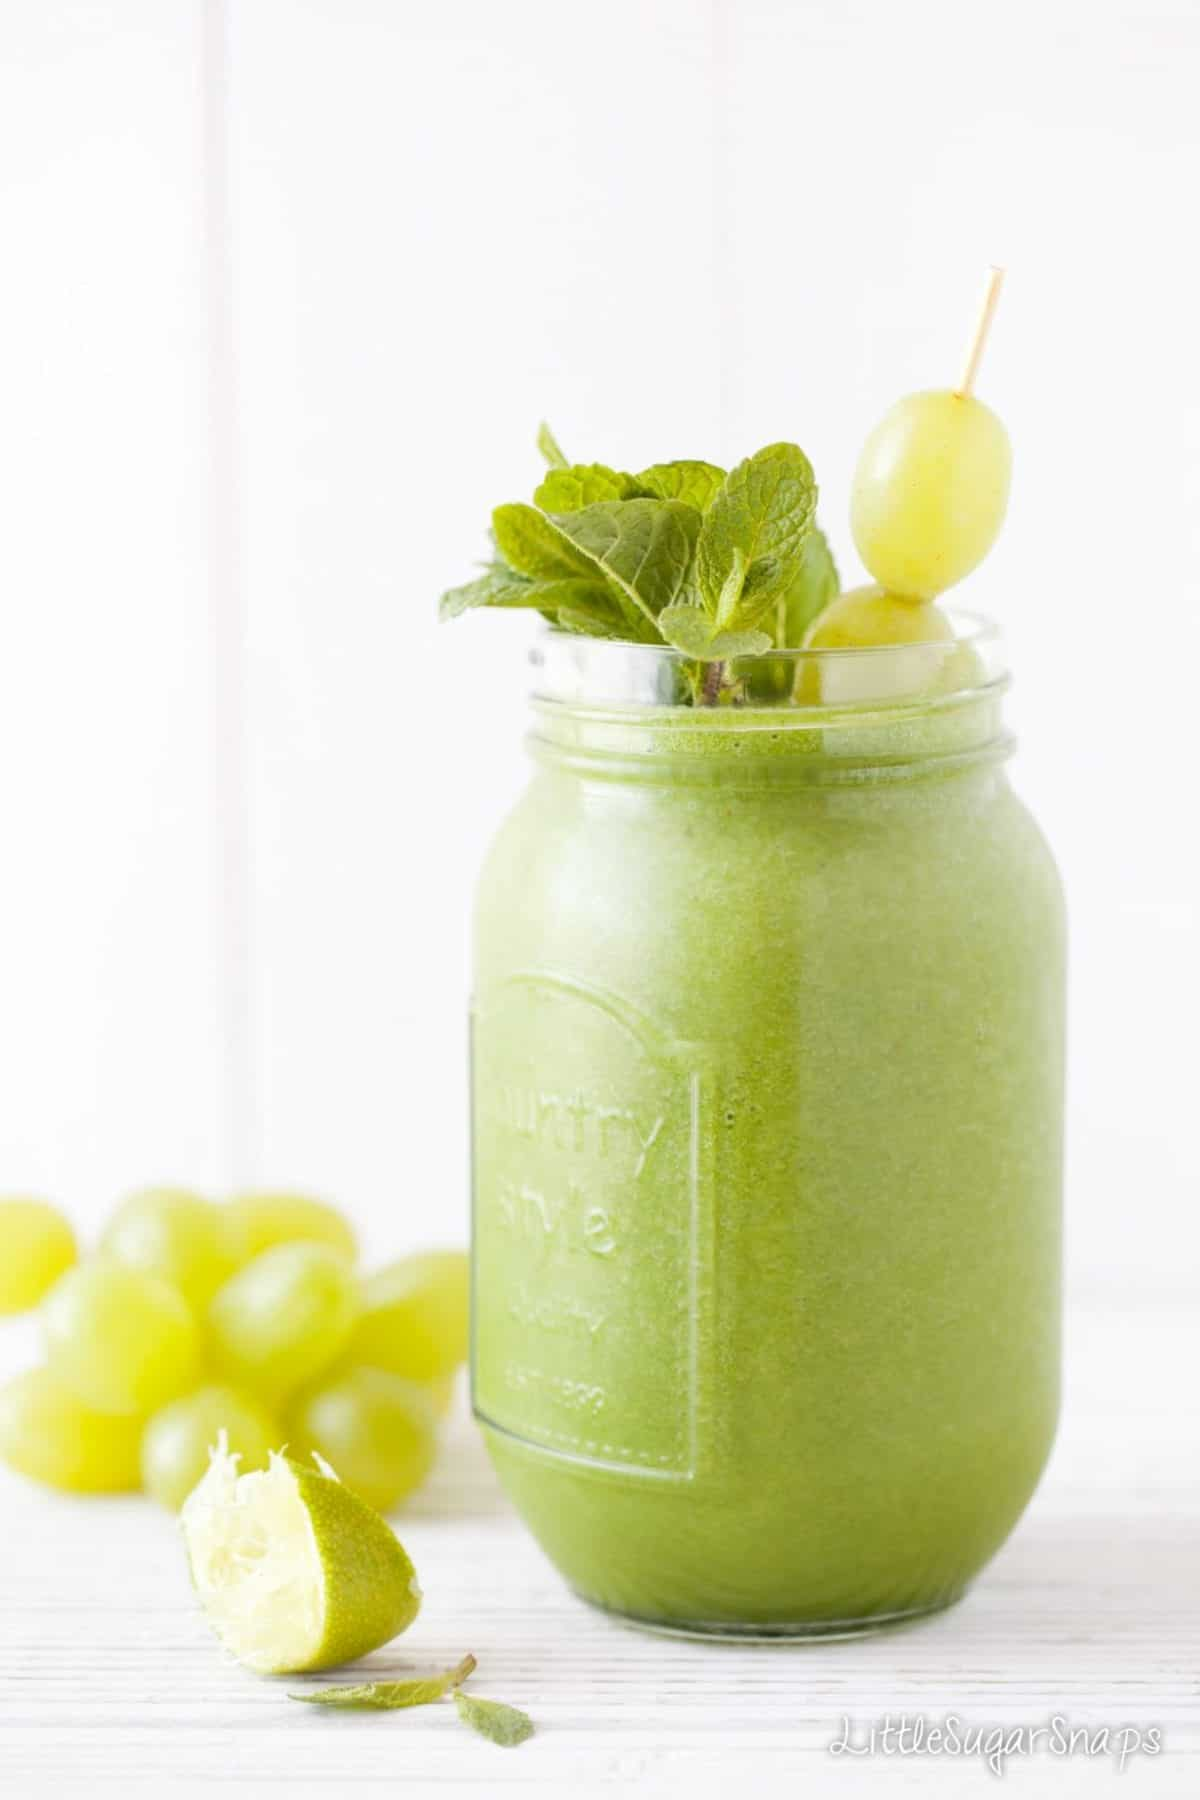 A green smoothie topped with grapes and mint